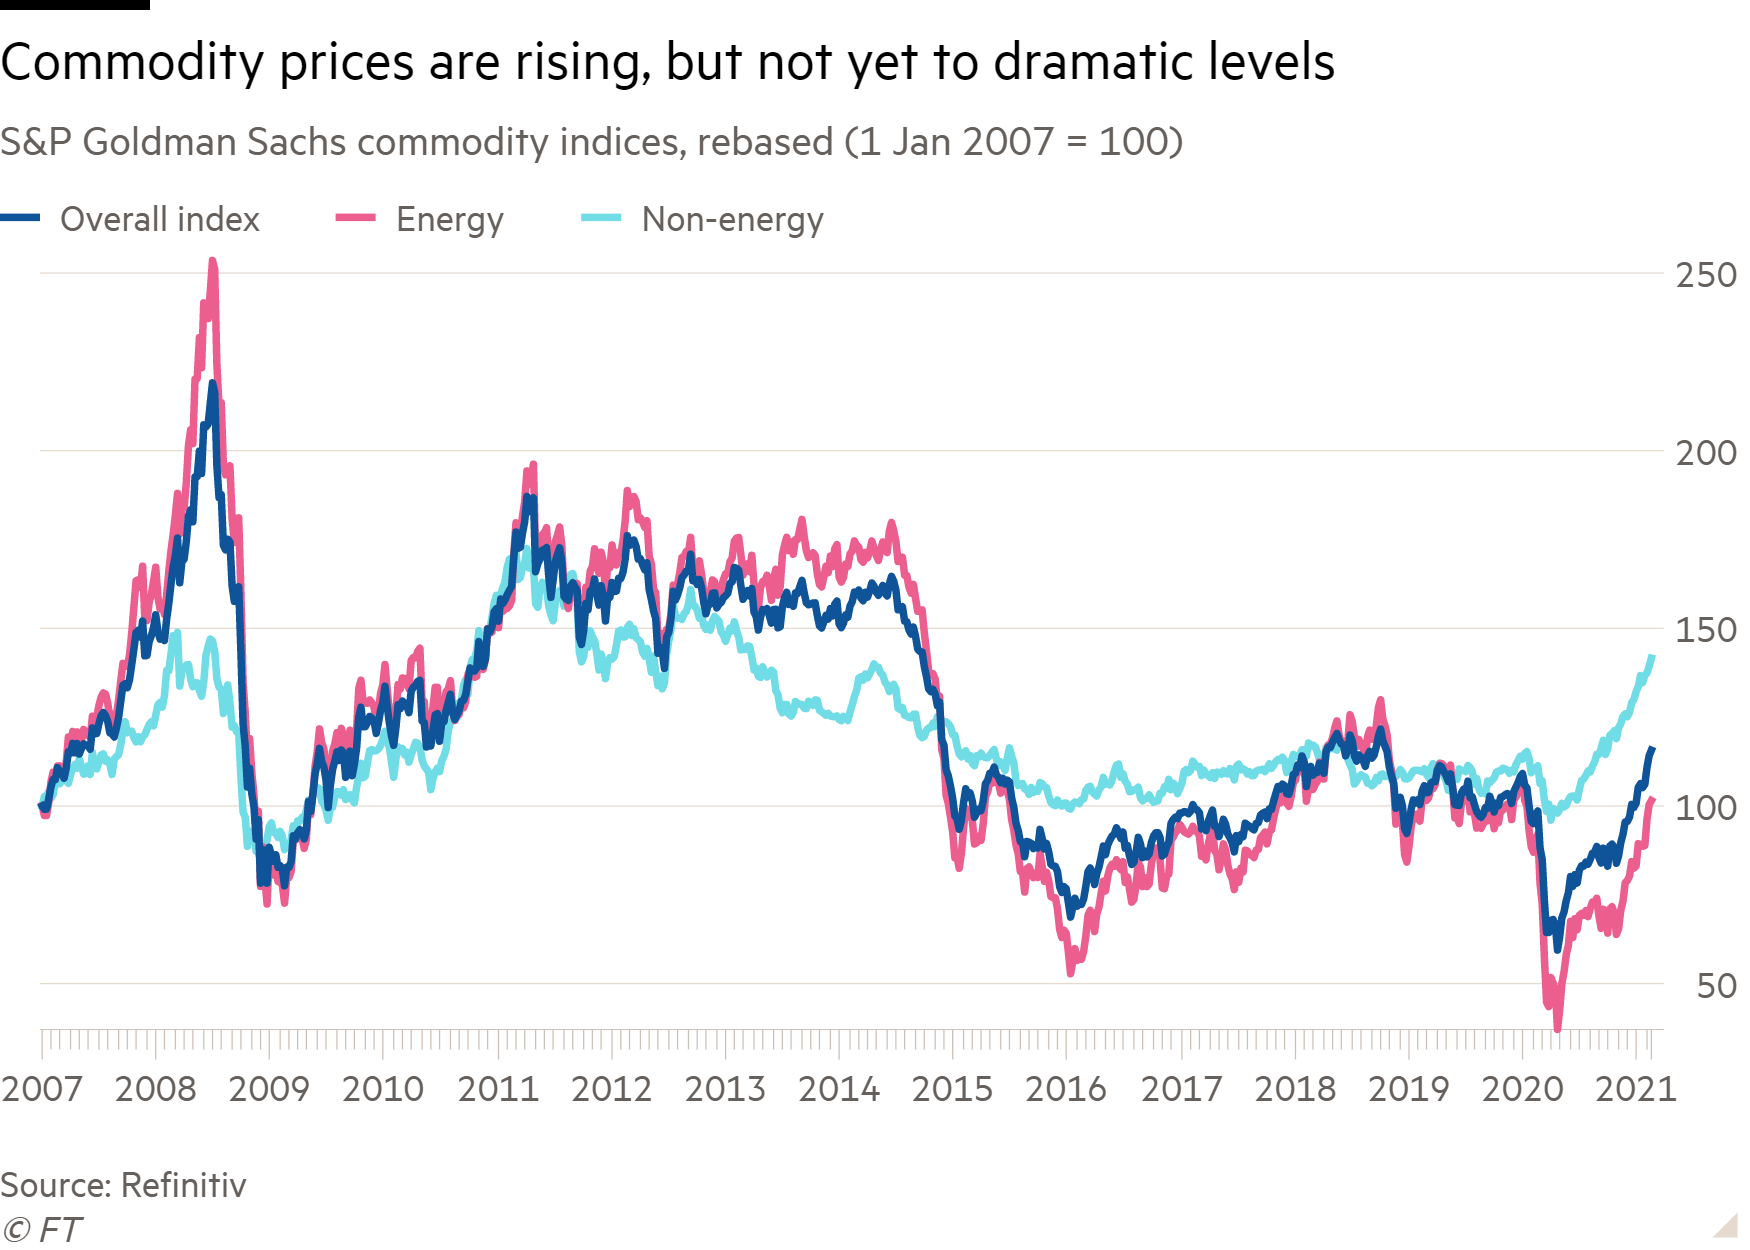 Line chart of S&P Goldman Sachs commodity indices, rebased (1 Jan 2007 = 100) showing Commodity prices are rising, but not yet to dramatic levels